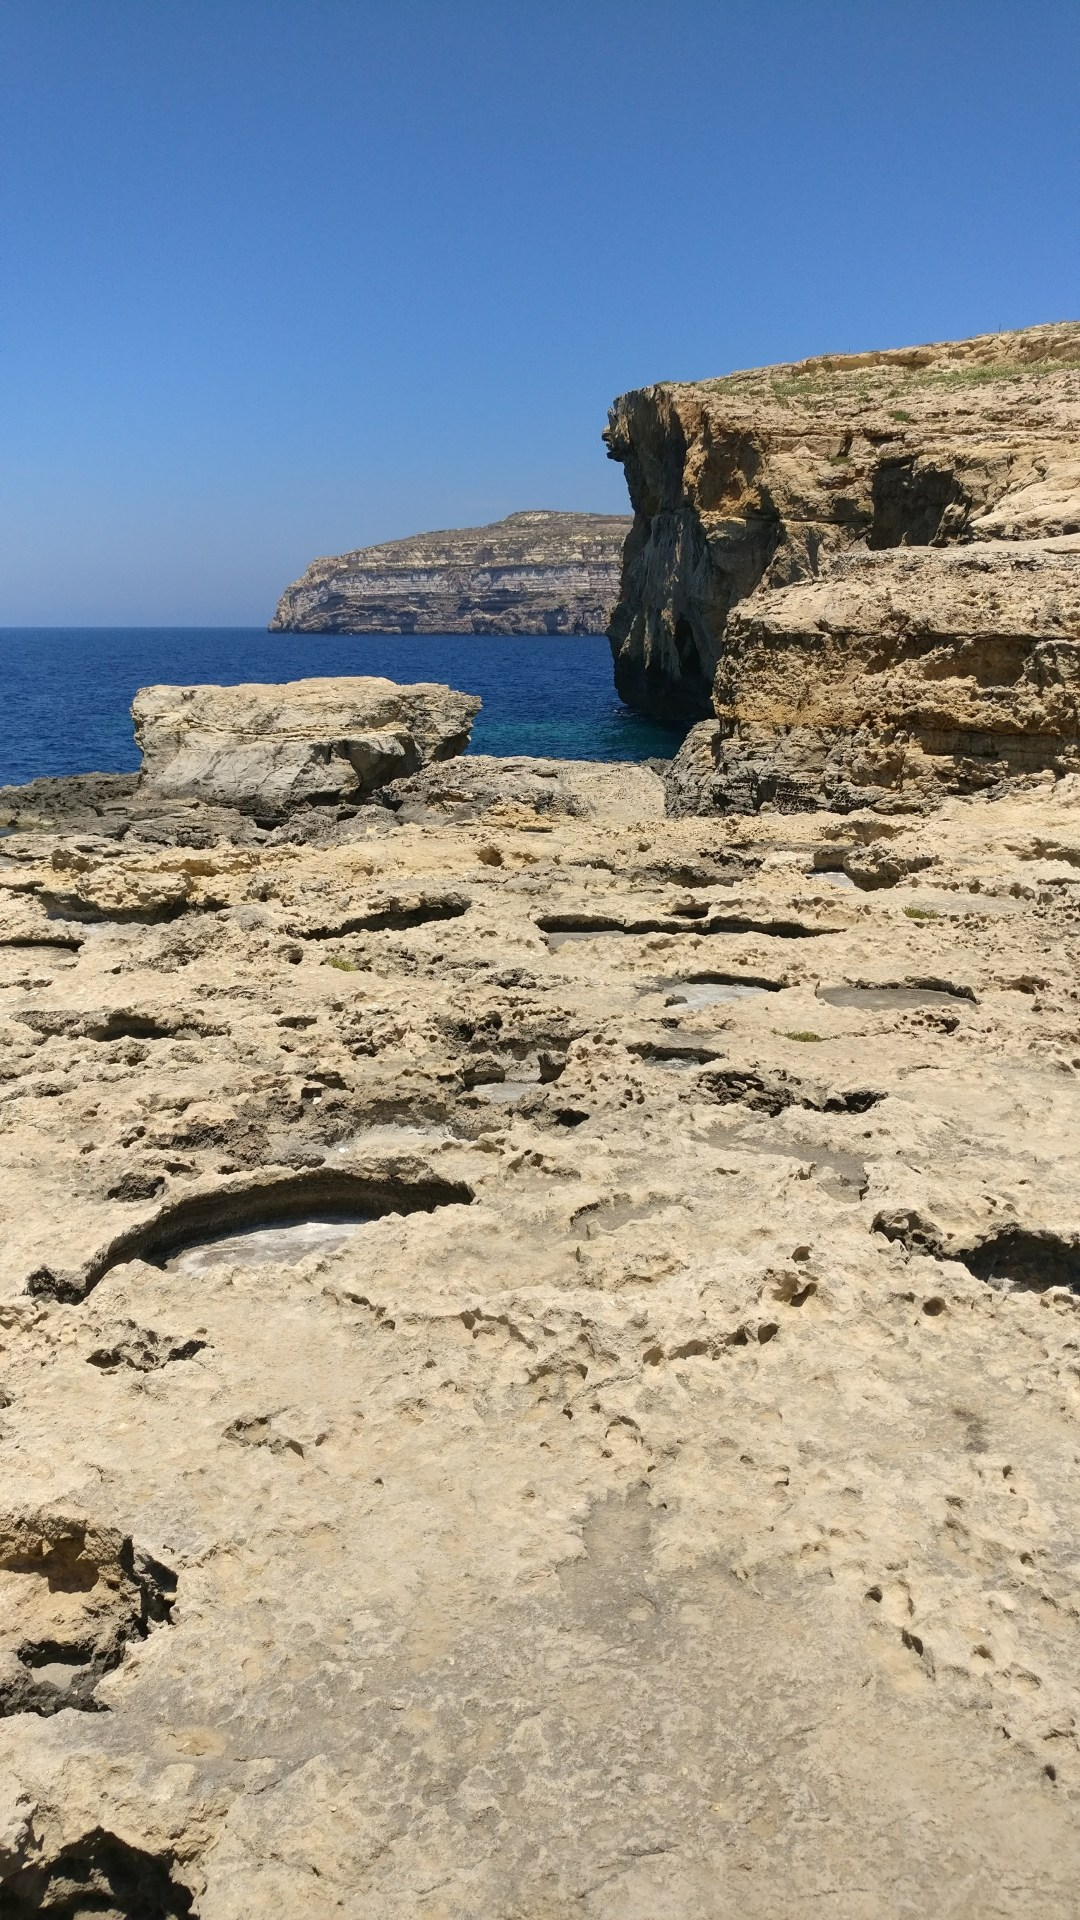 Day 3 in Malta - Gozo